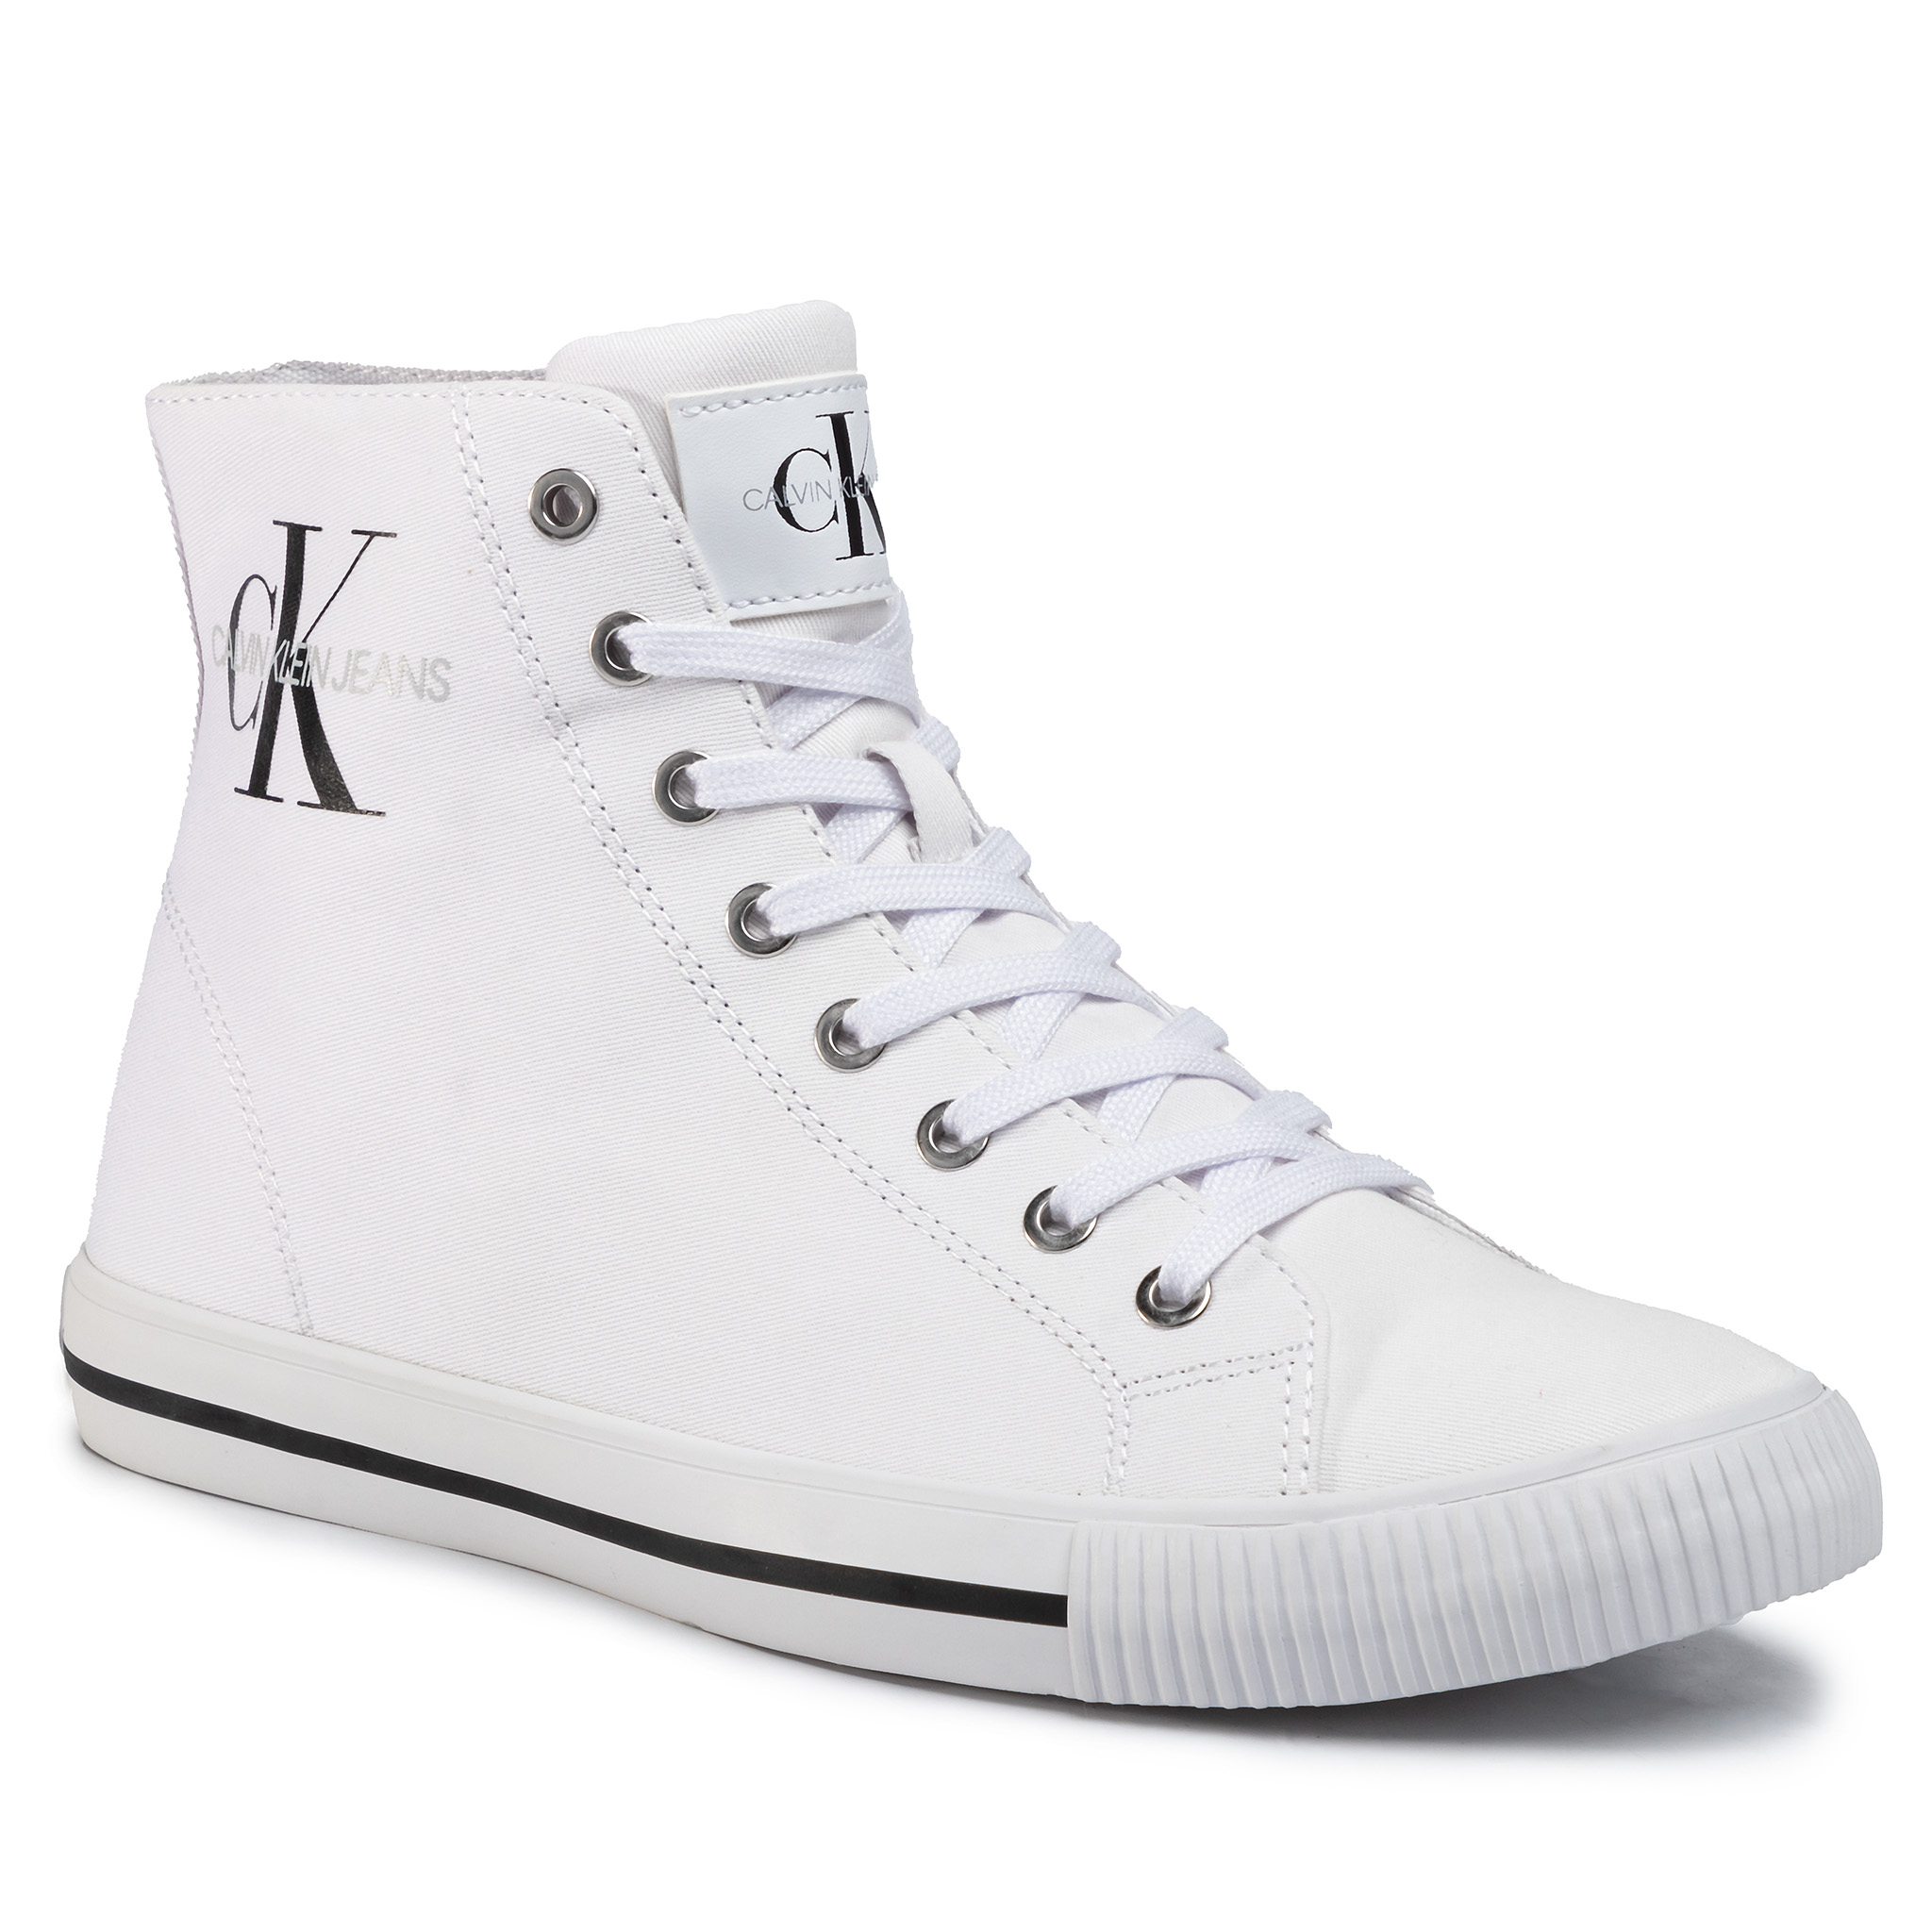 Image of Sneakers CALVIN KLEIN JEANS - Augusto B4S0671 White